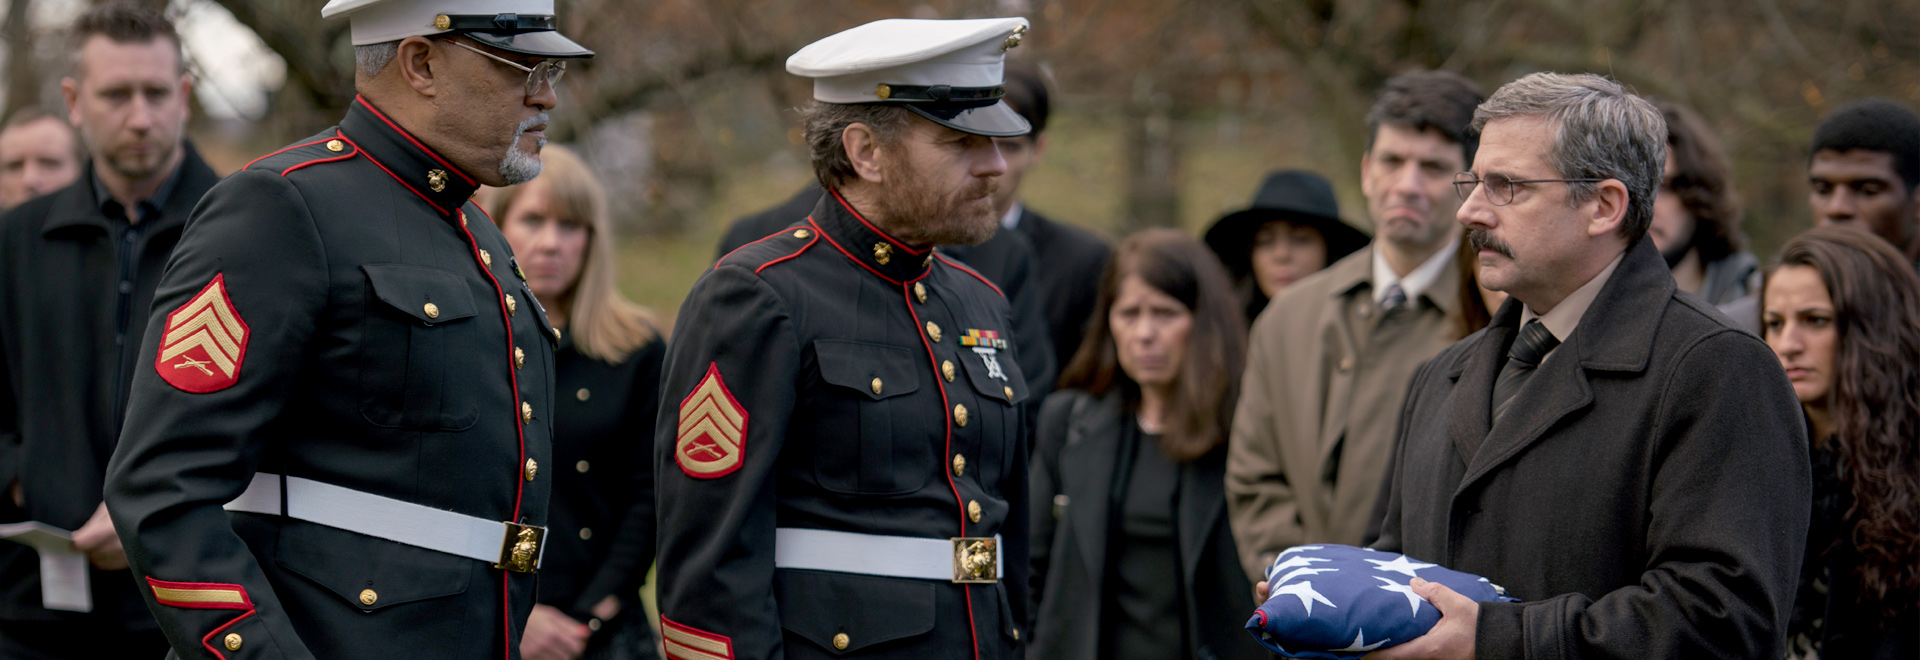 Last Flag Flying - An emotionally-charged American anti-war film